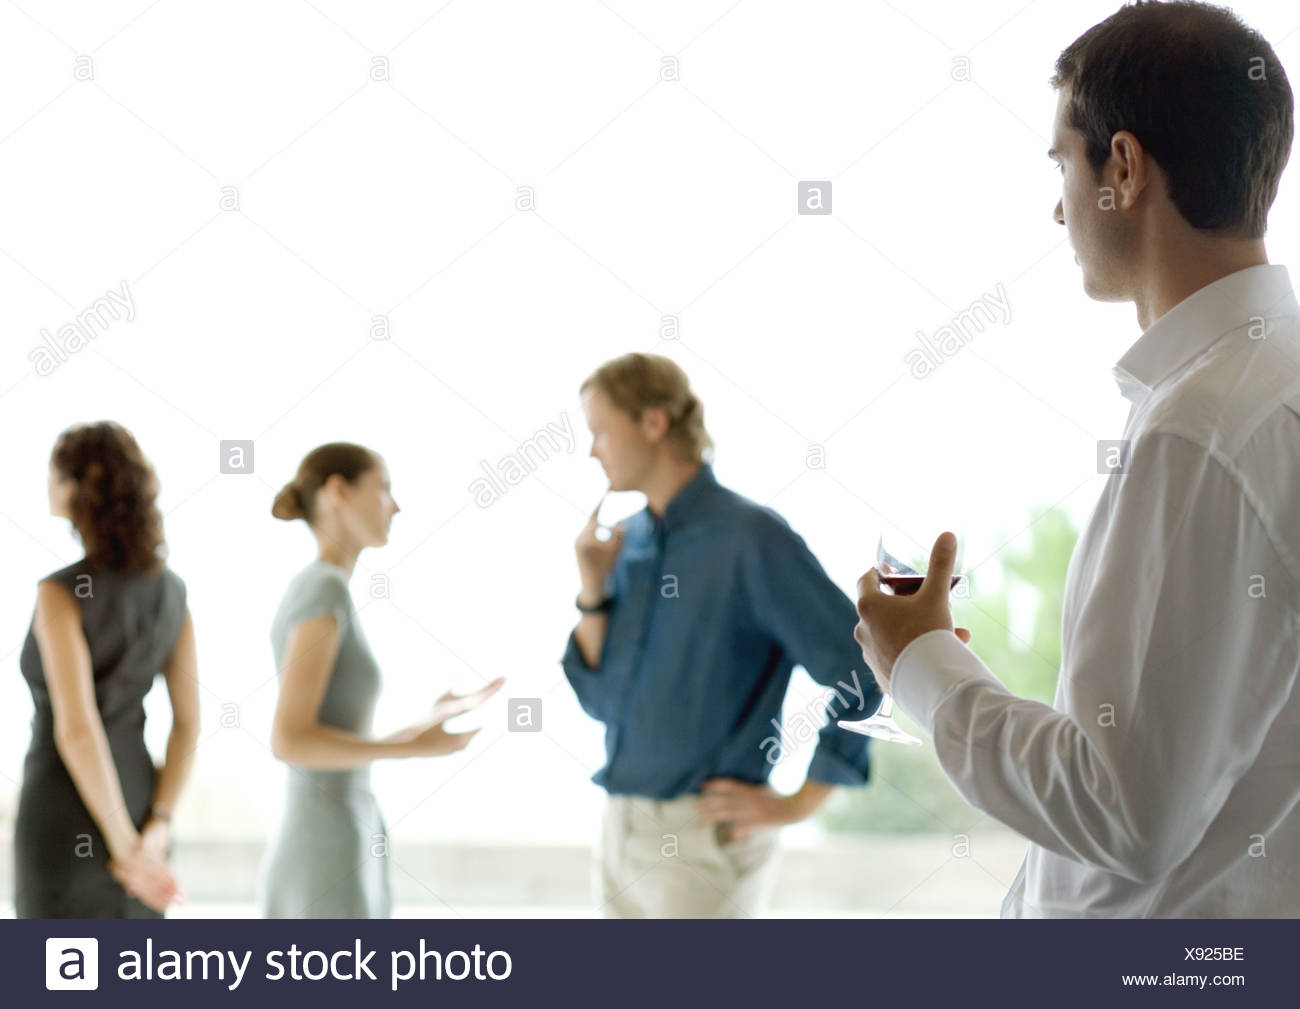 Cocktail party - Stock Image